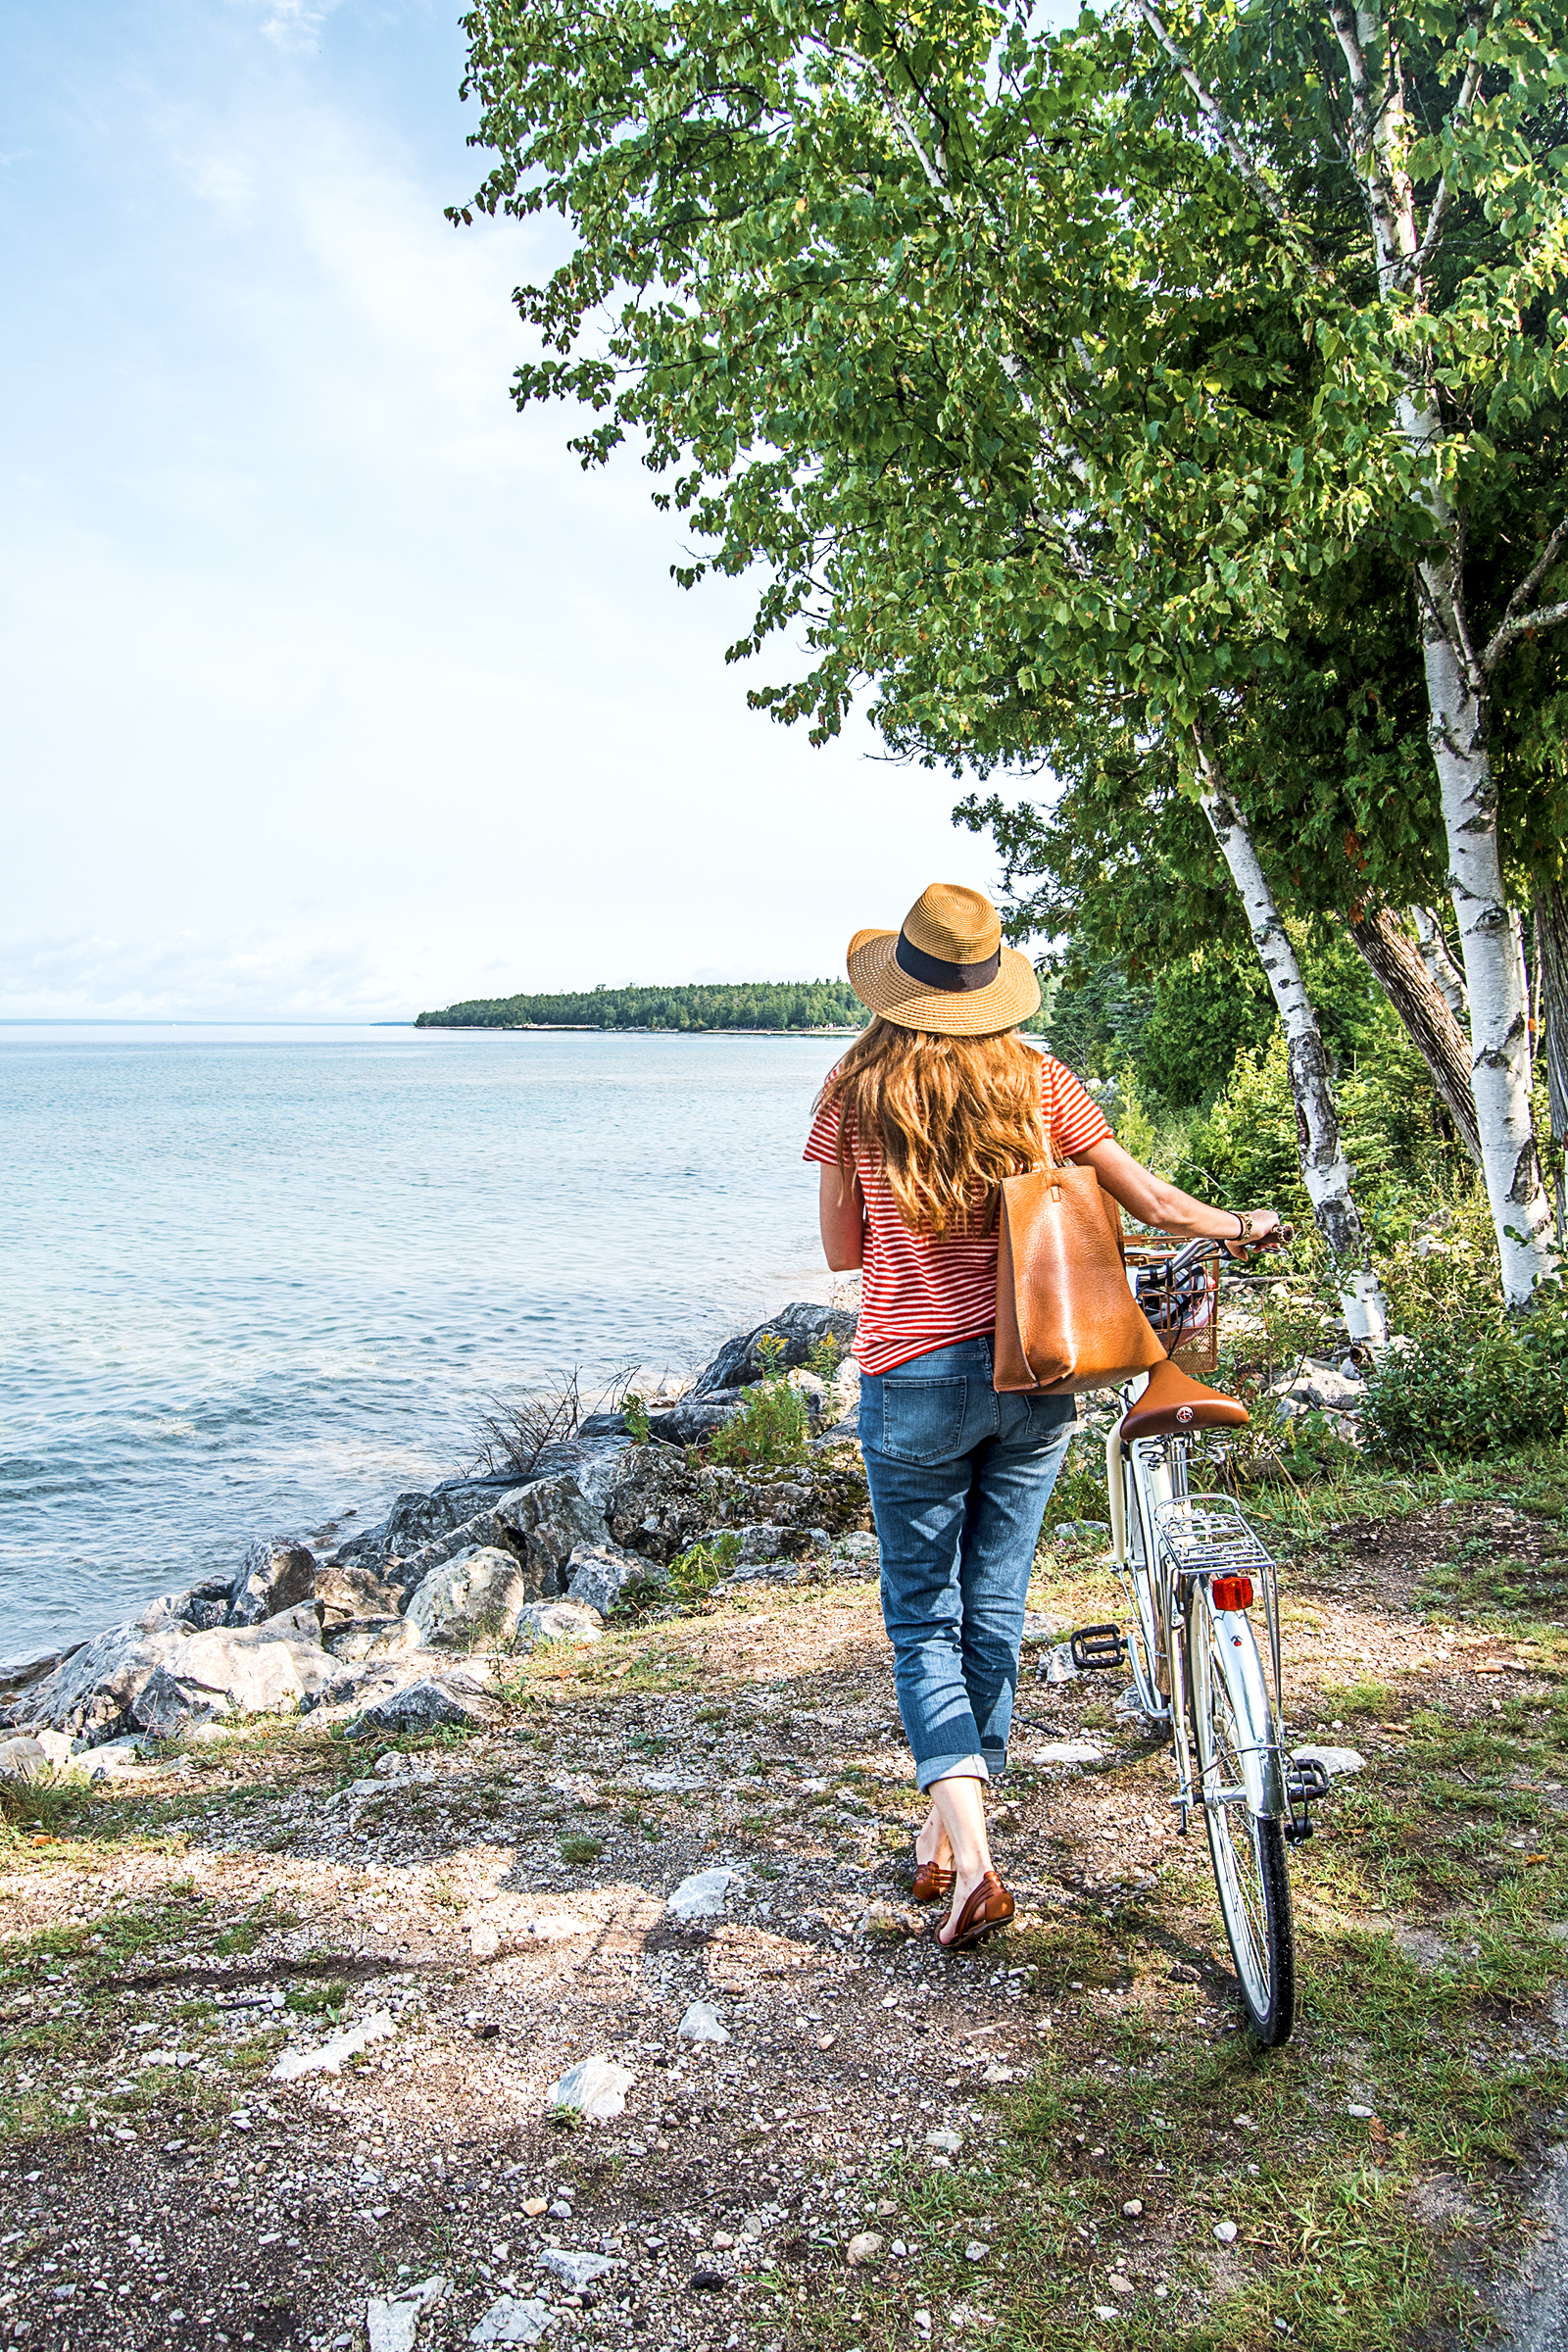 Mackinac Island is one of the jewels of the Midwest, and I'm sharing my must-do Mackinac Island guide today on the blog: from where to stay and eat to what to do on the island, it's all here!